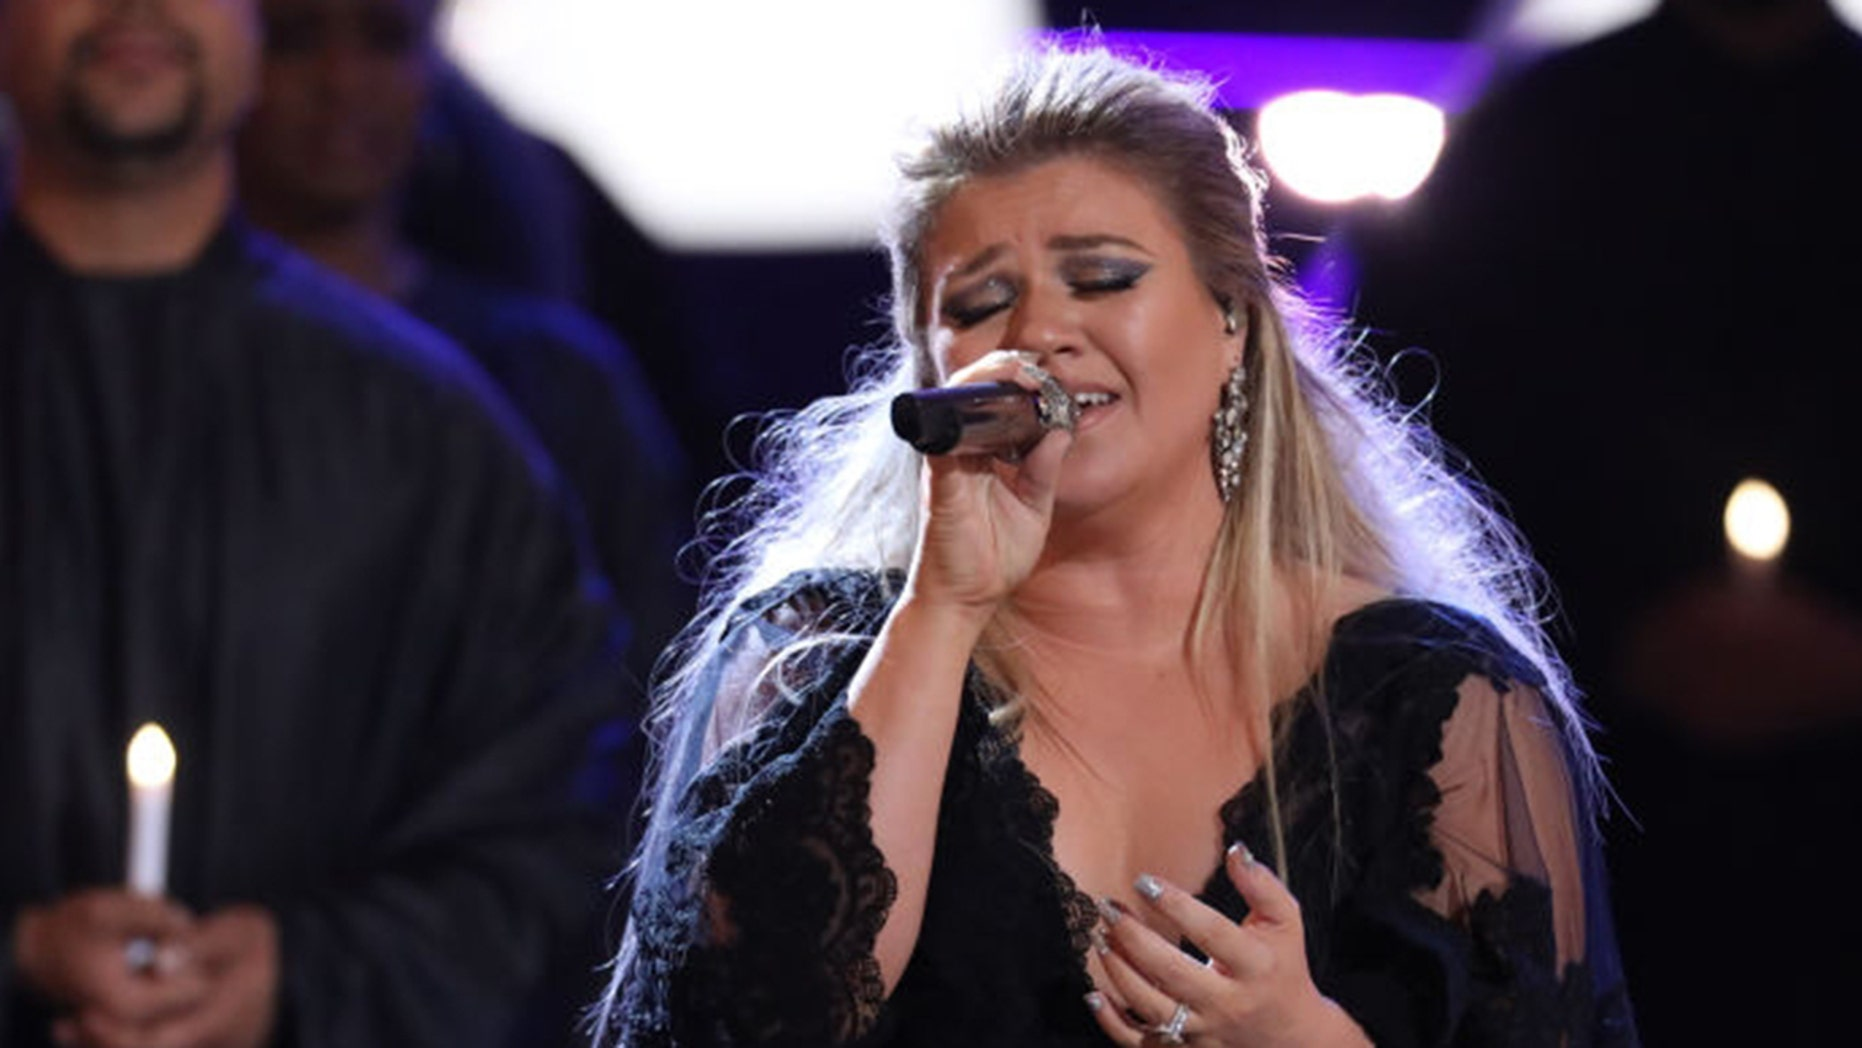 """Kelly Clarkson stunned the crowd with her """"Shallow"""" rendition at her concert in Green Bay, Wisconsin."""